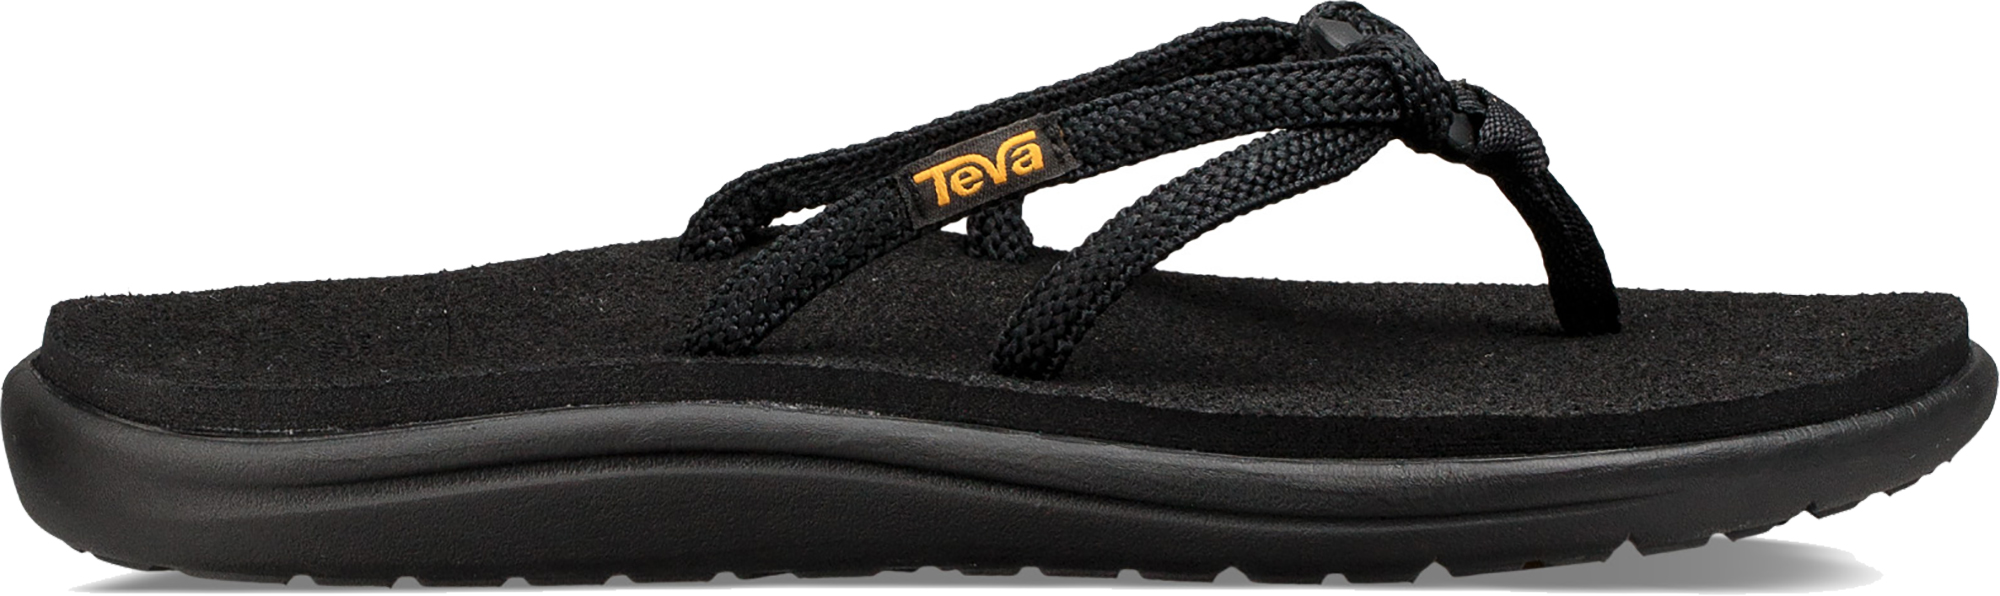 8e11cdb12d0cff Teva Women s Voya Tri-flip Flip Flops Comfortable Casual Style Uk4 Black.  About this product. Picture 1 of 5  Picture 2 of 5 ...